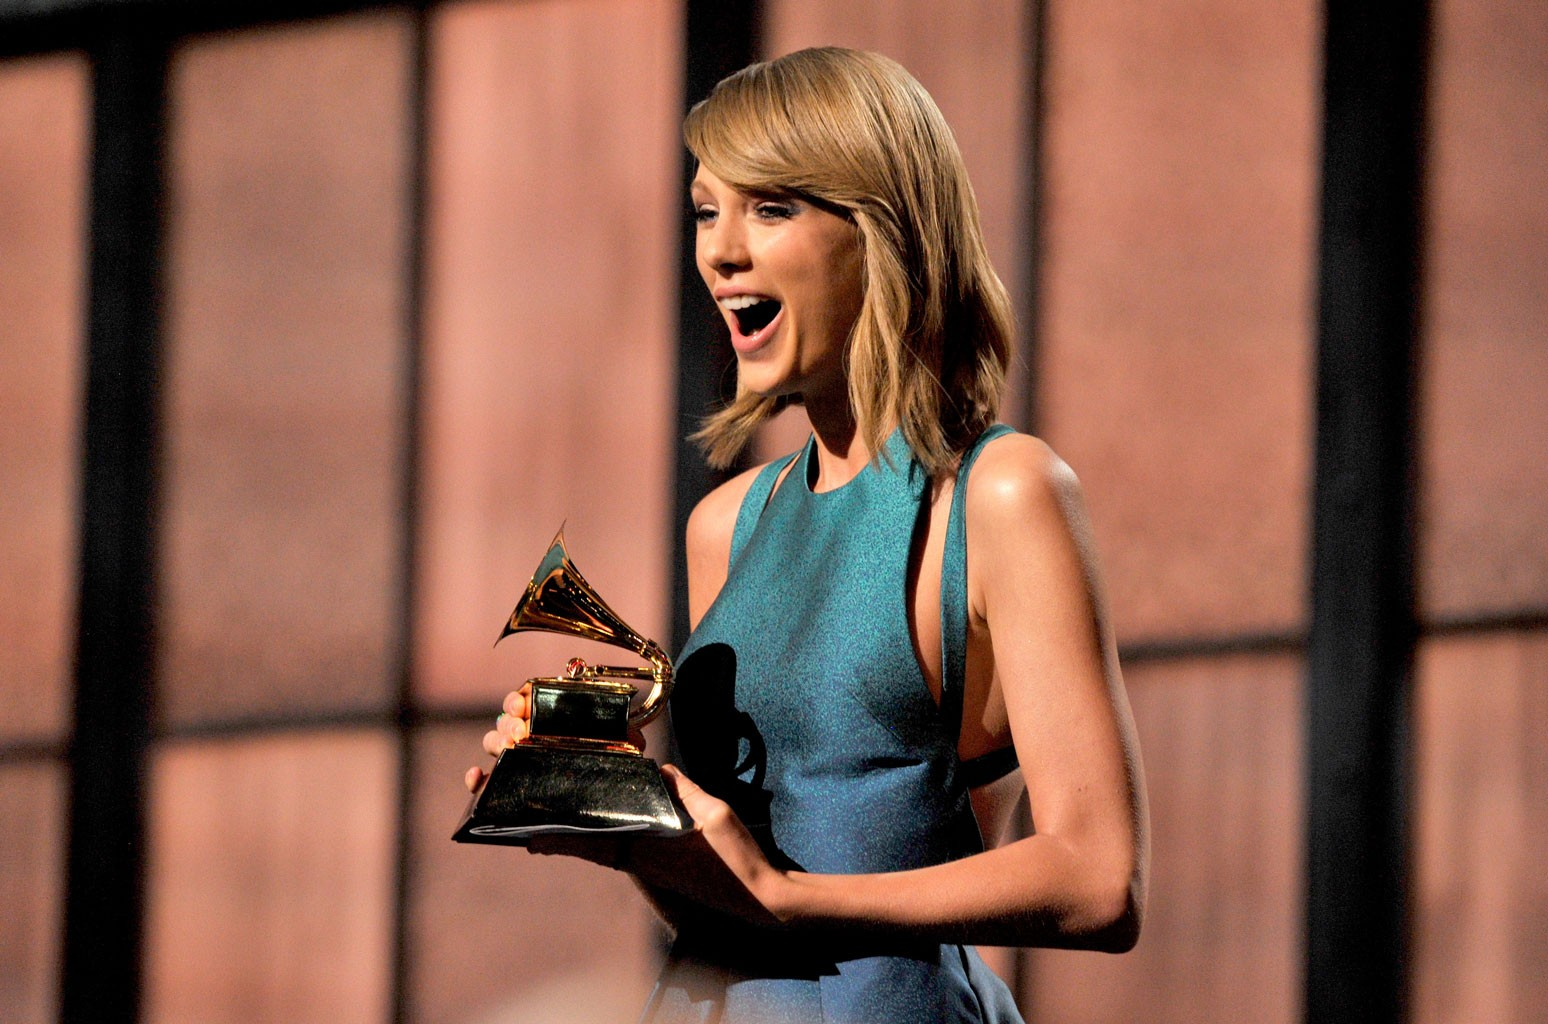 Who Will Win in Grammys' Big Four Categories? Our Fearless Predictions - Billboard